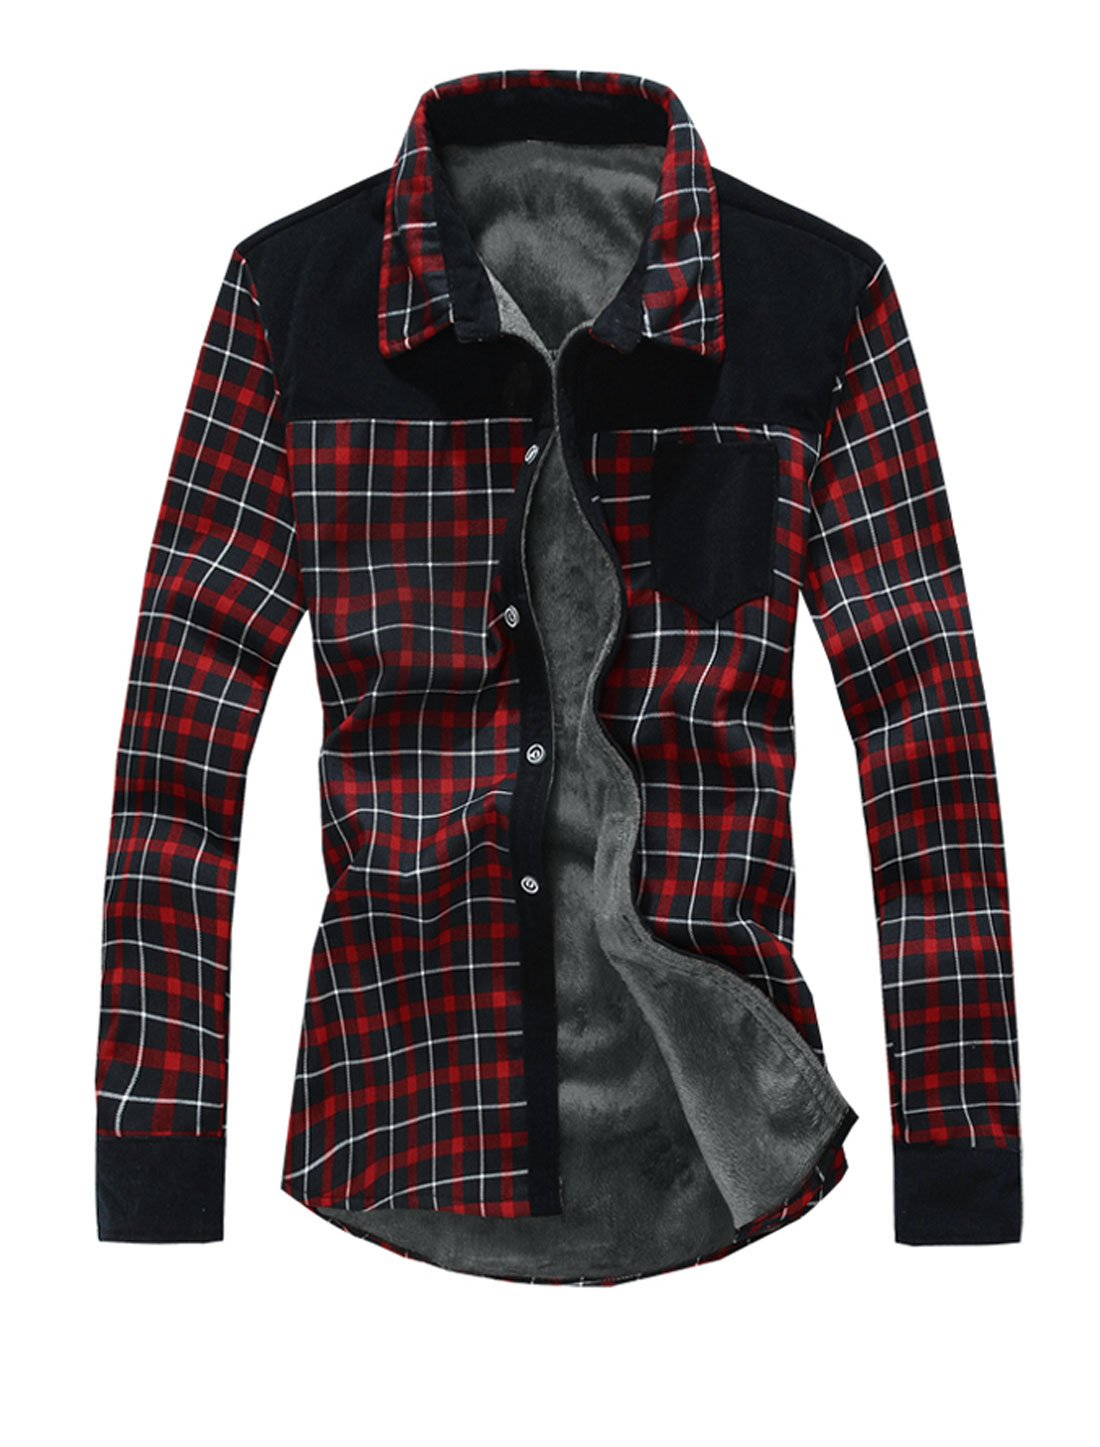 Men Plaids Pattern Fleece Inside Fashion Shirt Red Black M